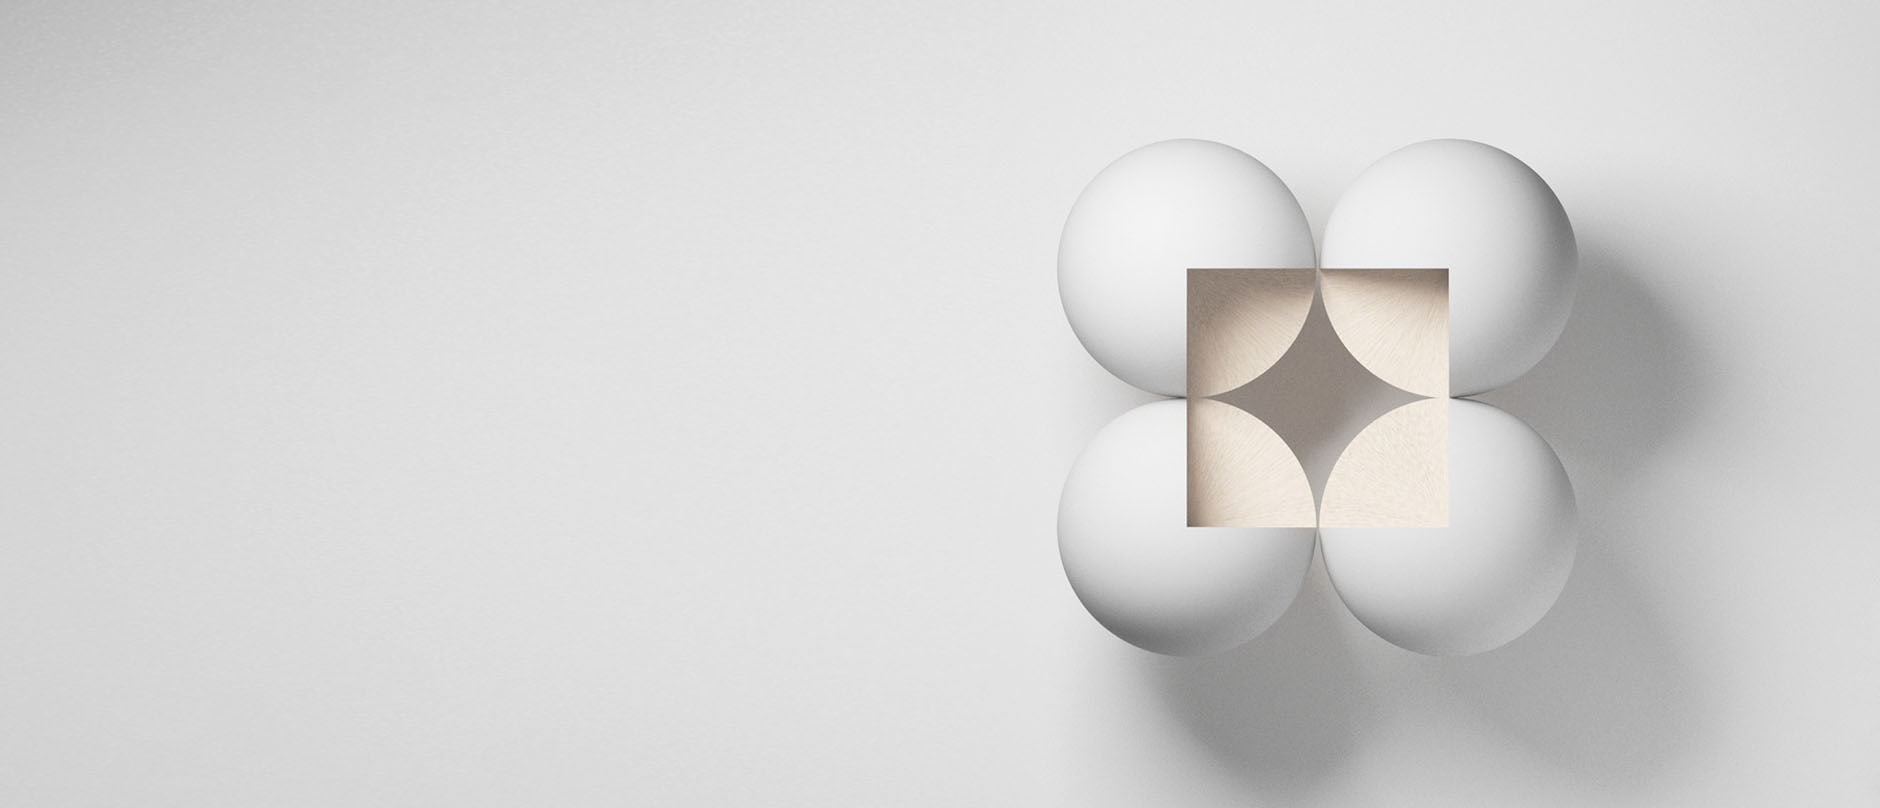 white spheres with a square cut into the center